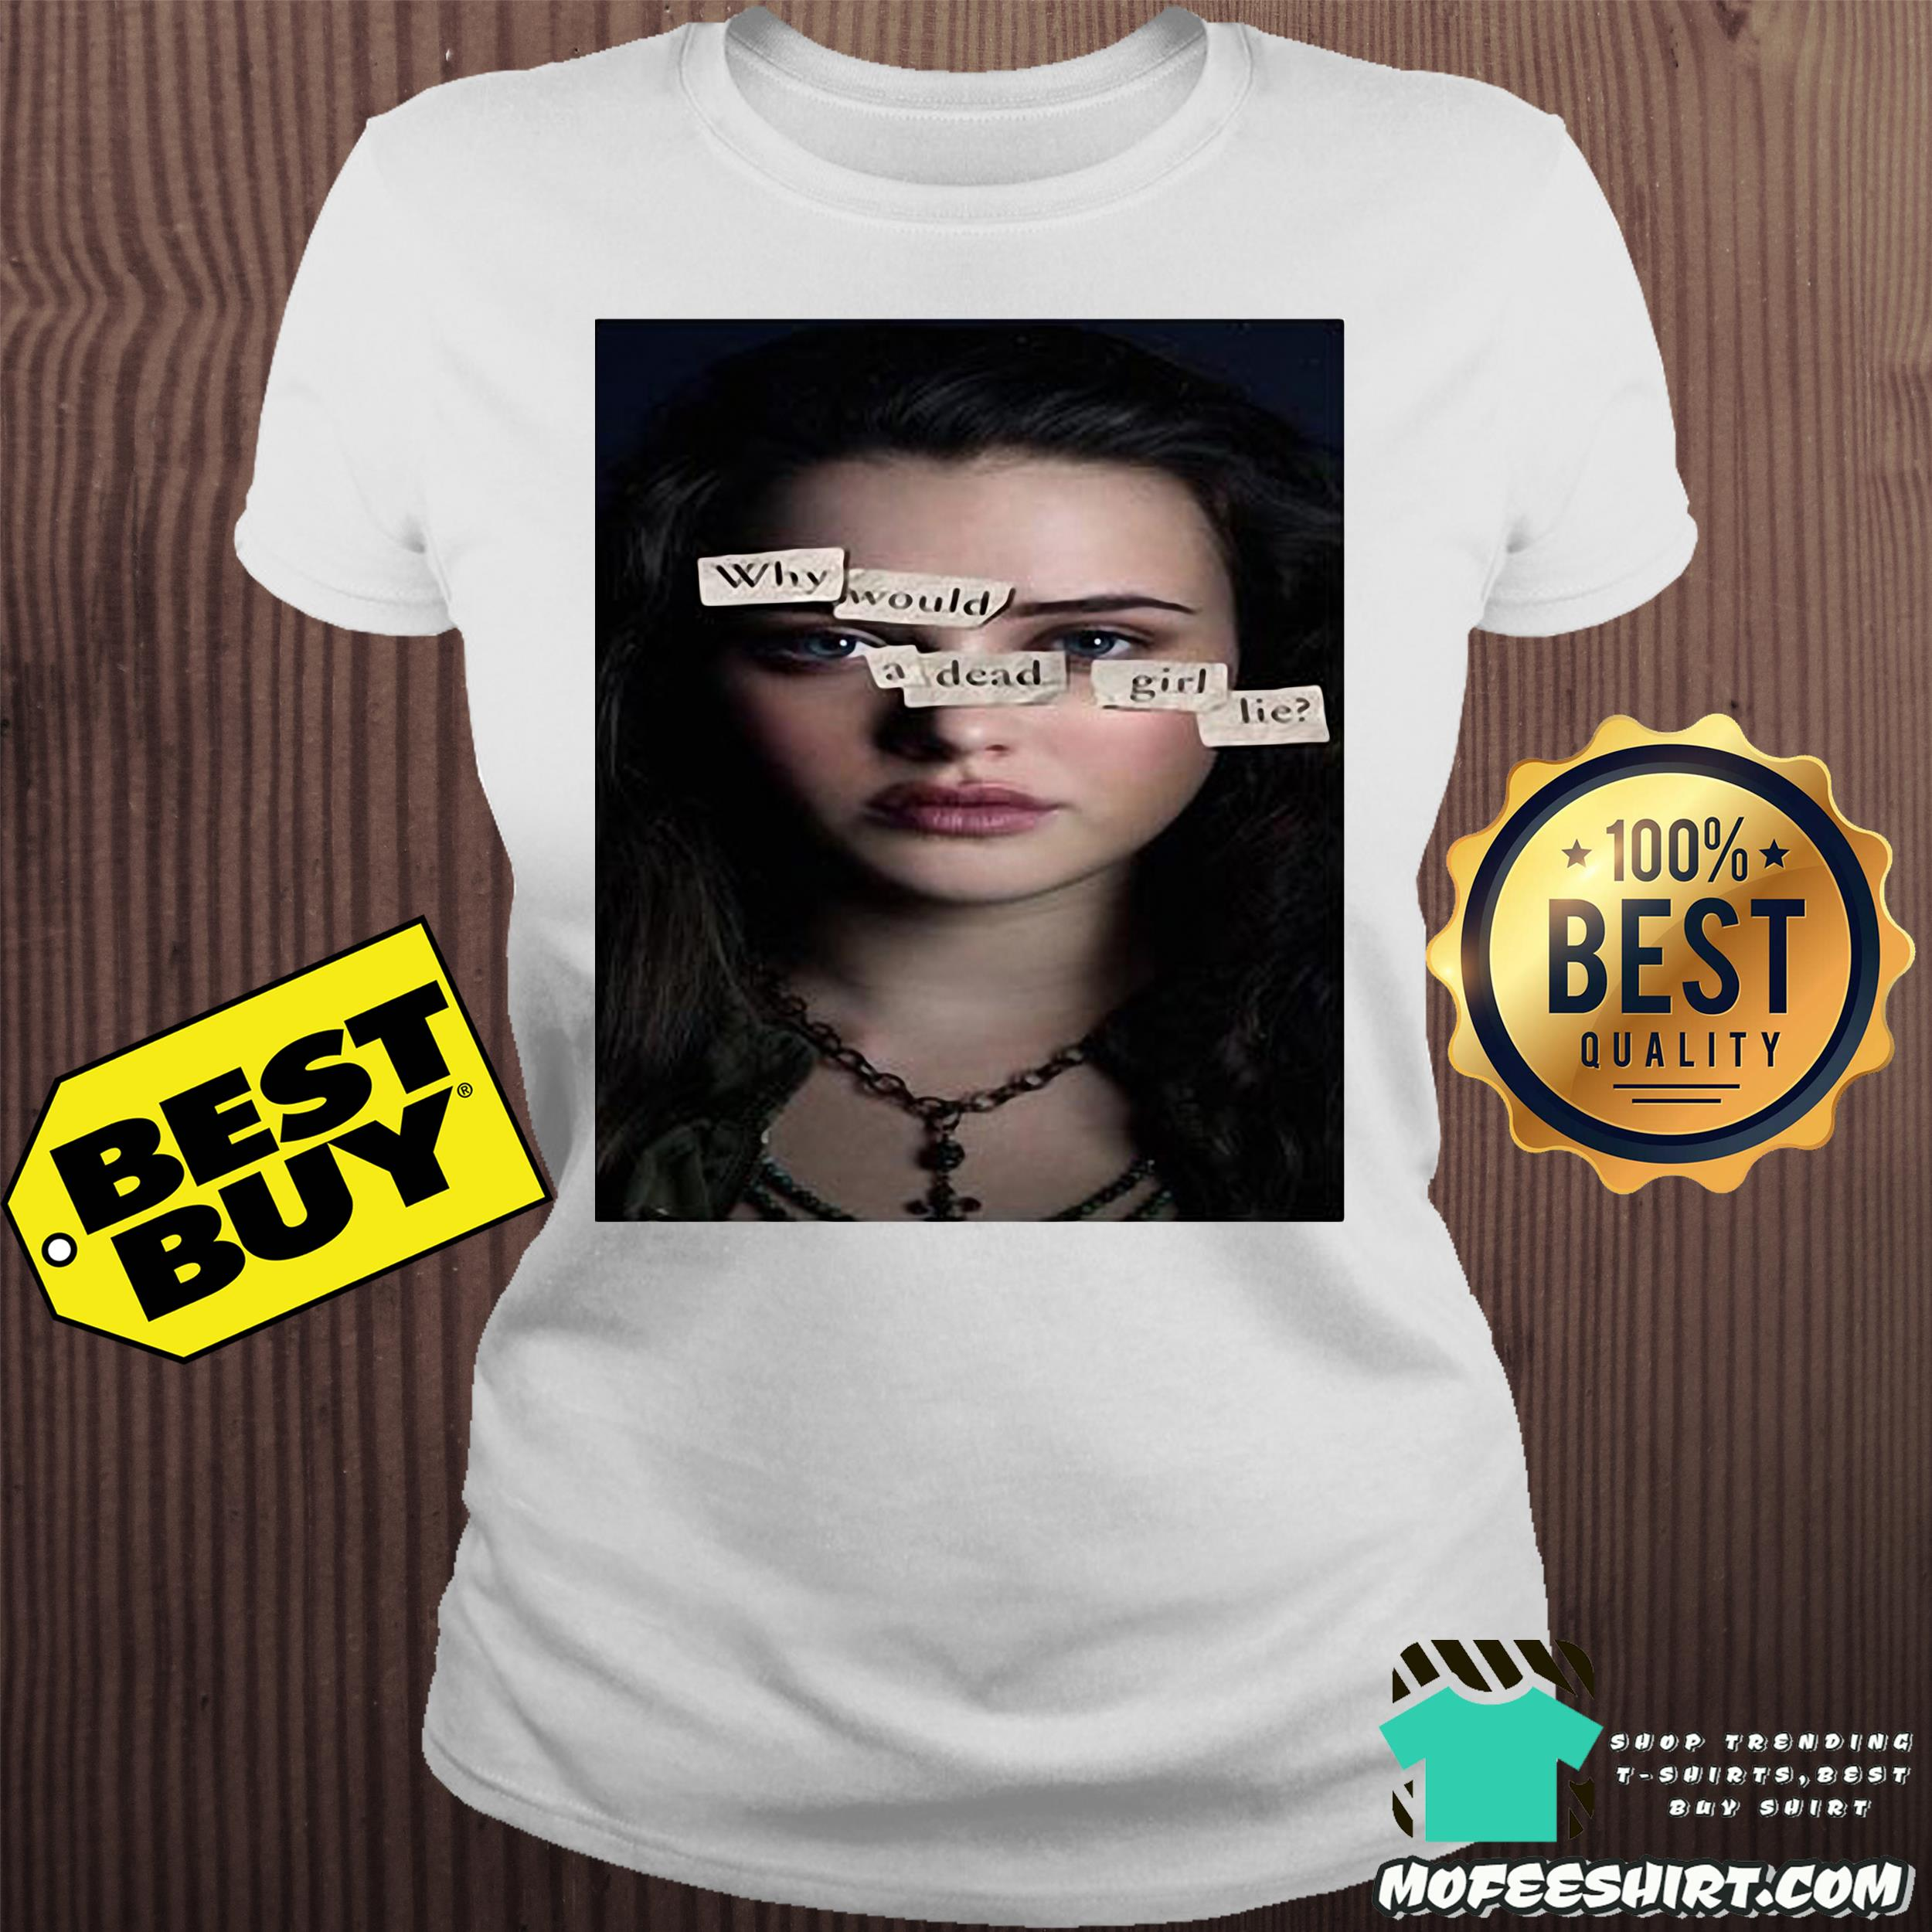 13 reasons why would a dead girl lie ladies tee - 13 reasons why would a dead girl lie shirt